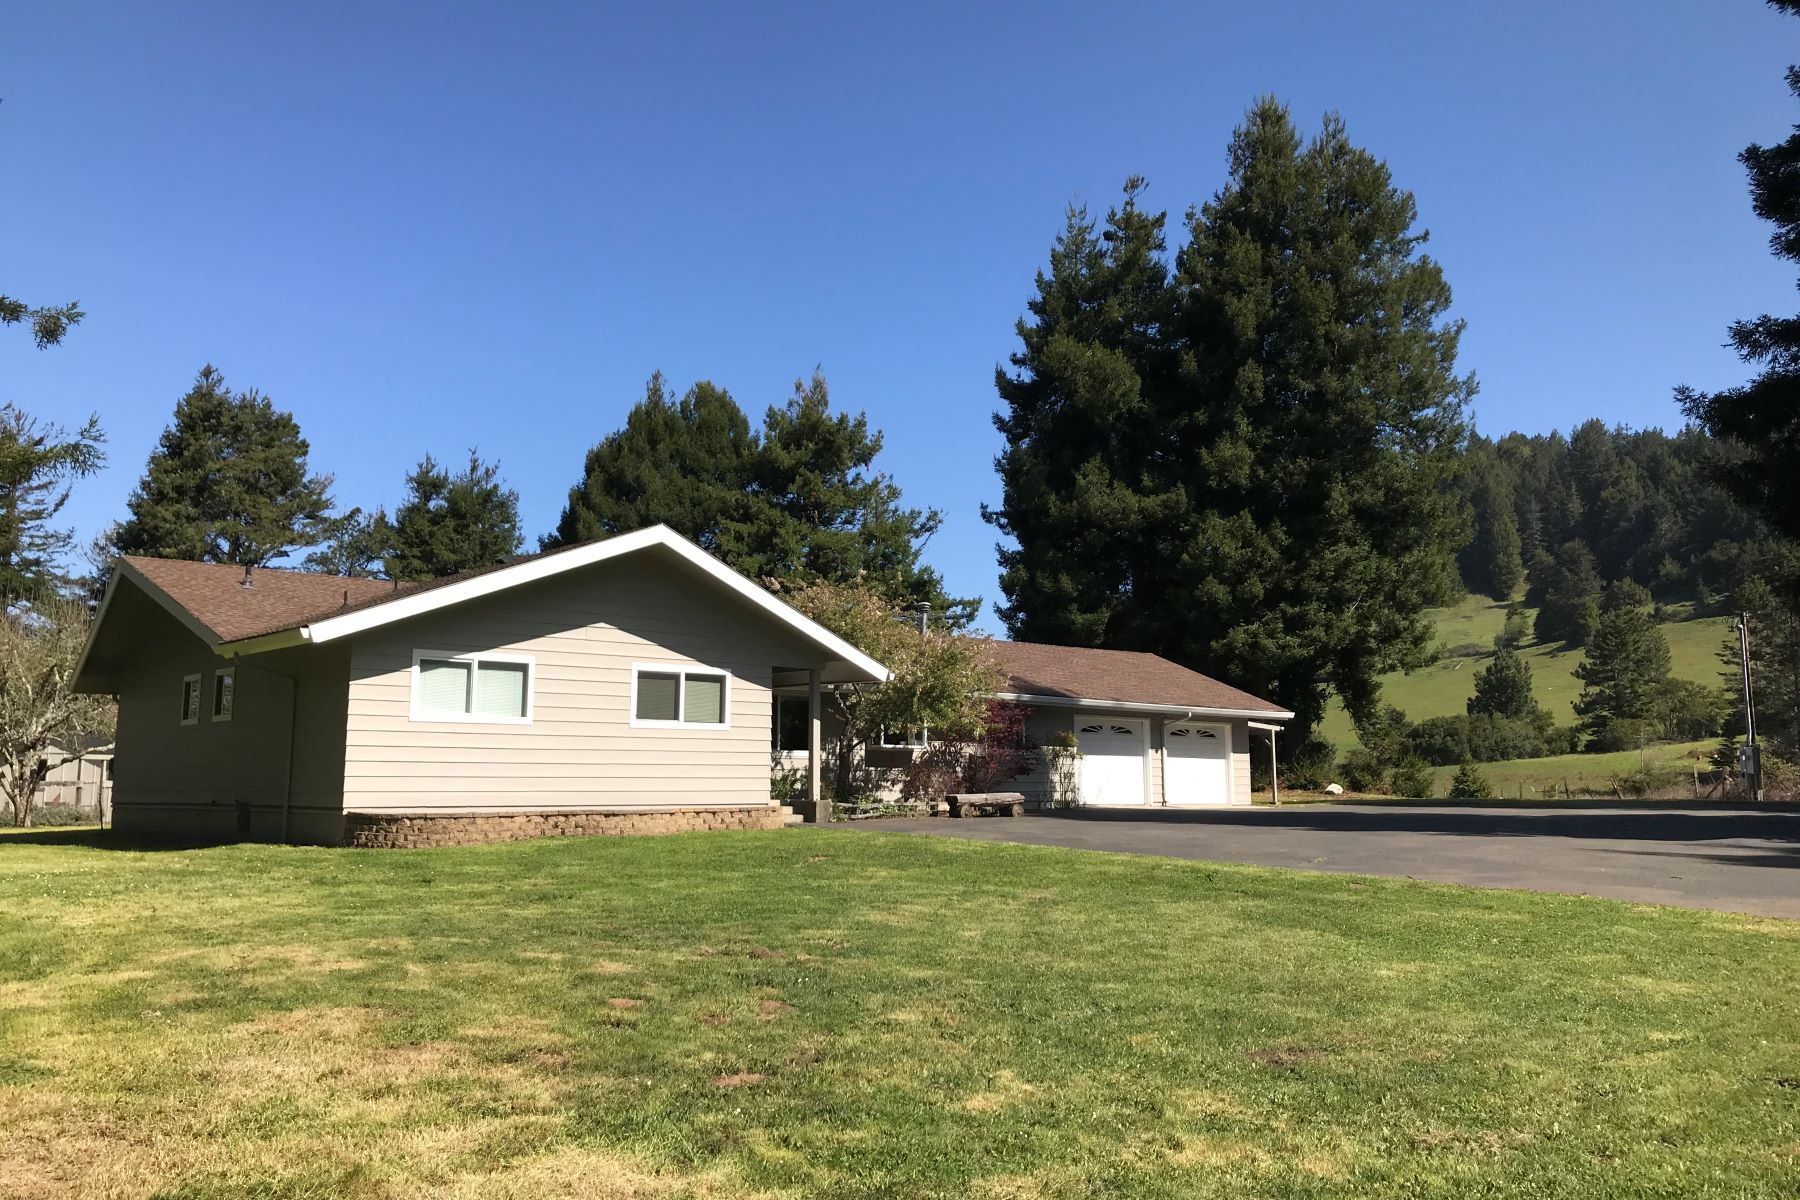 Farm / Ranch / Plantation for Sale at End of Road Privacy 30354 Pudding Creek Road Fort Bragg, California 95437 United States